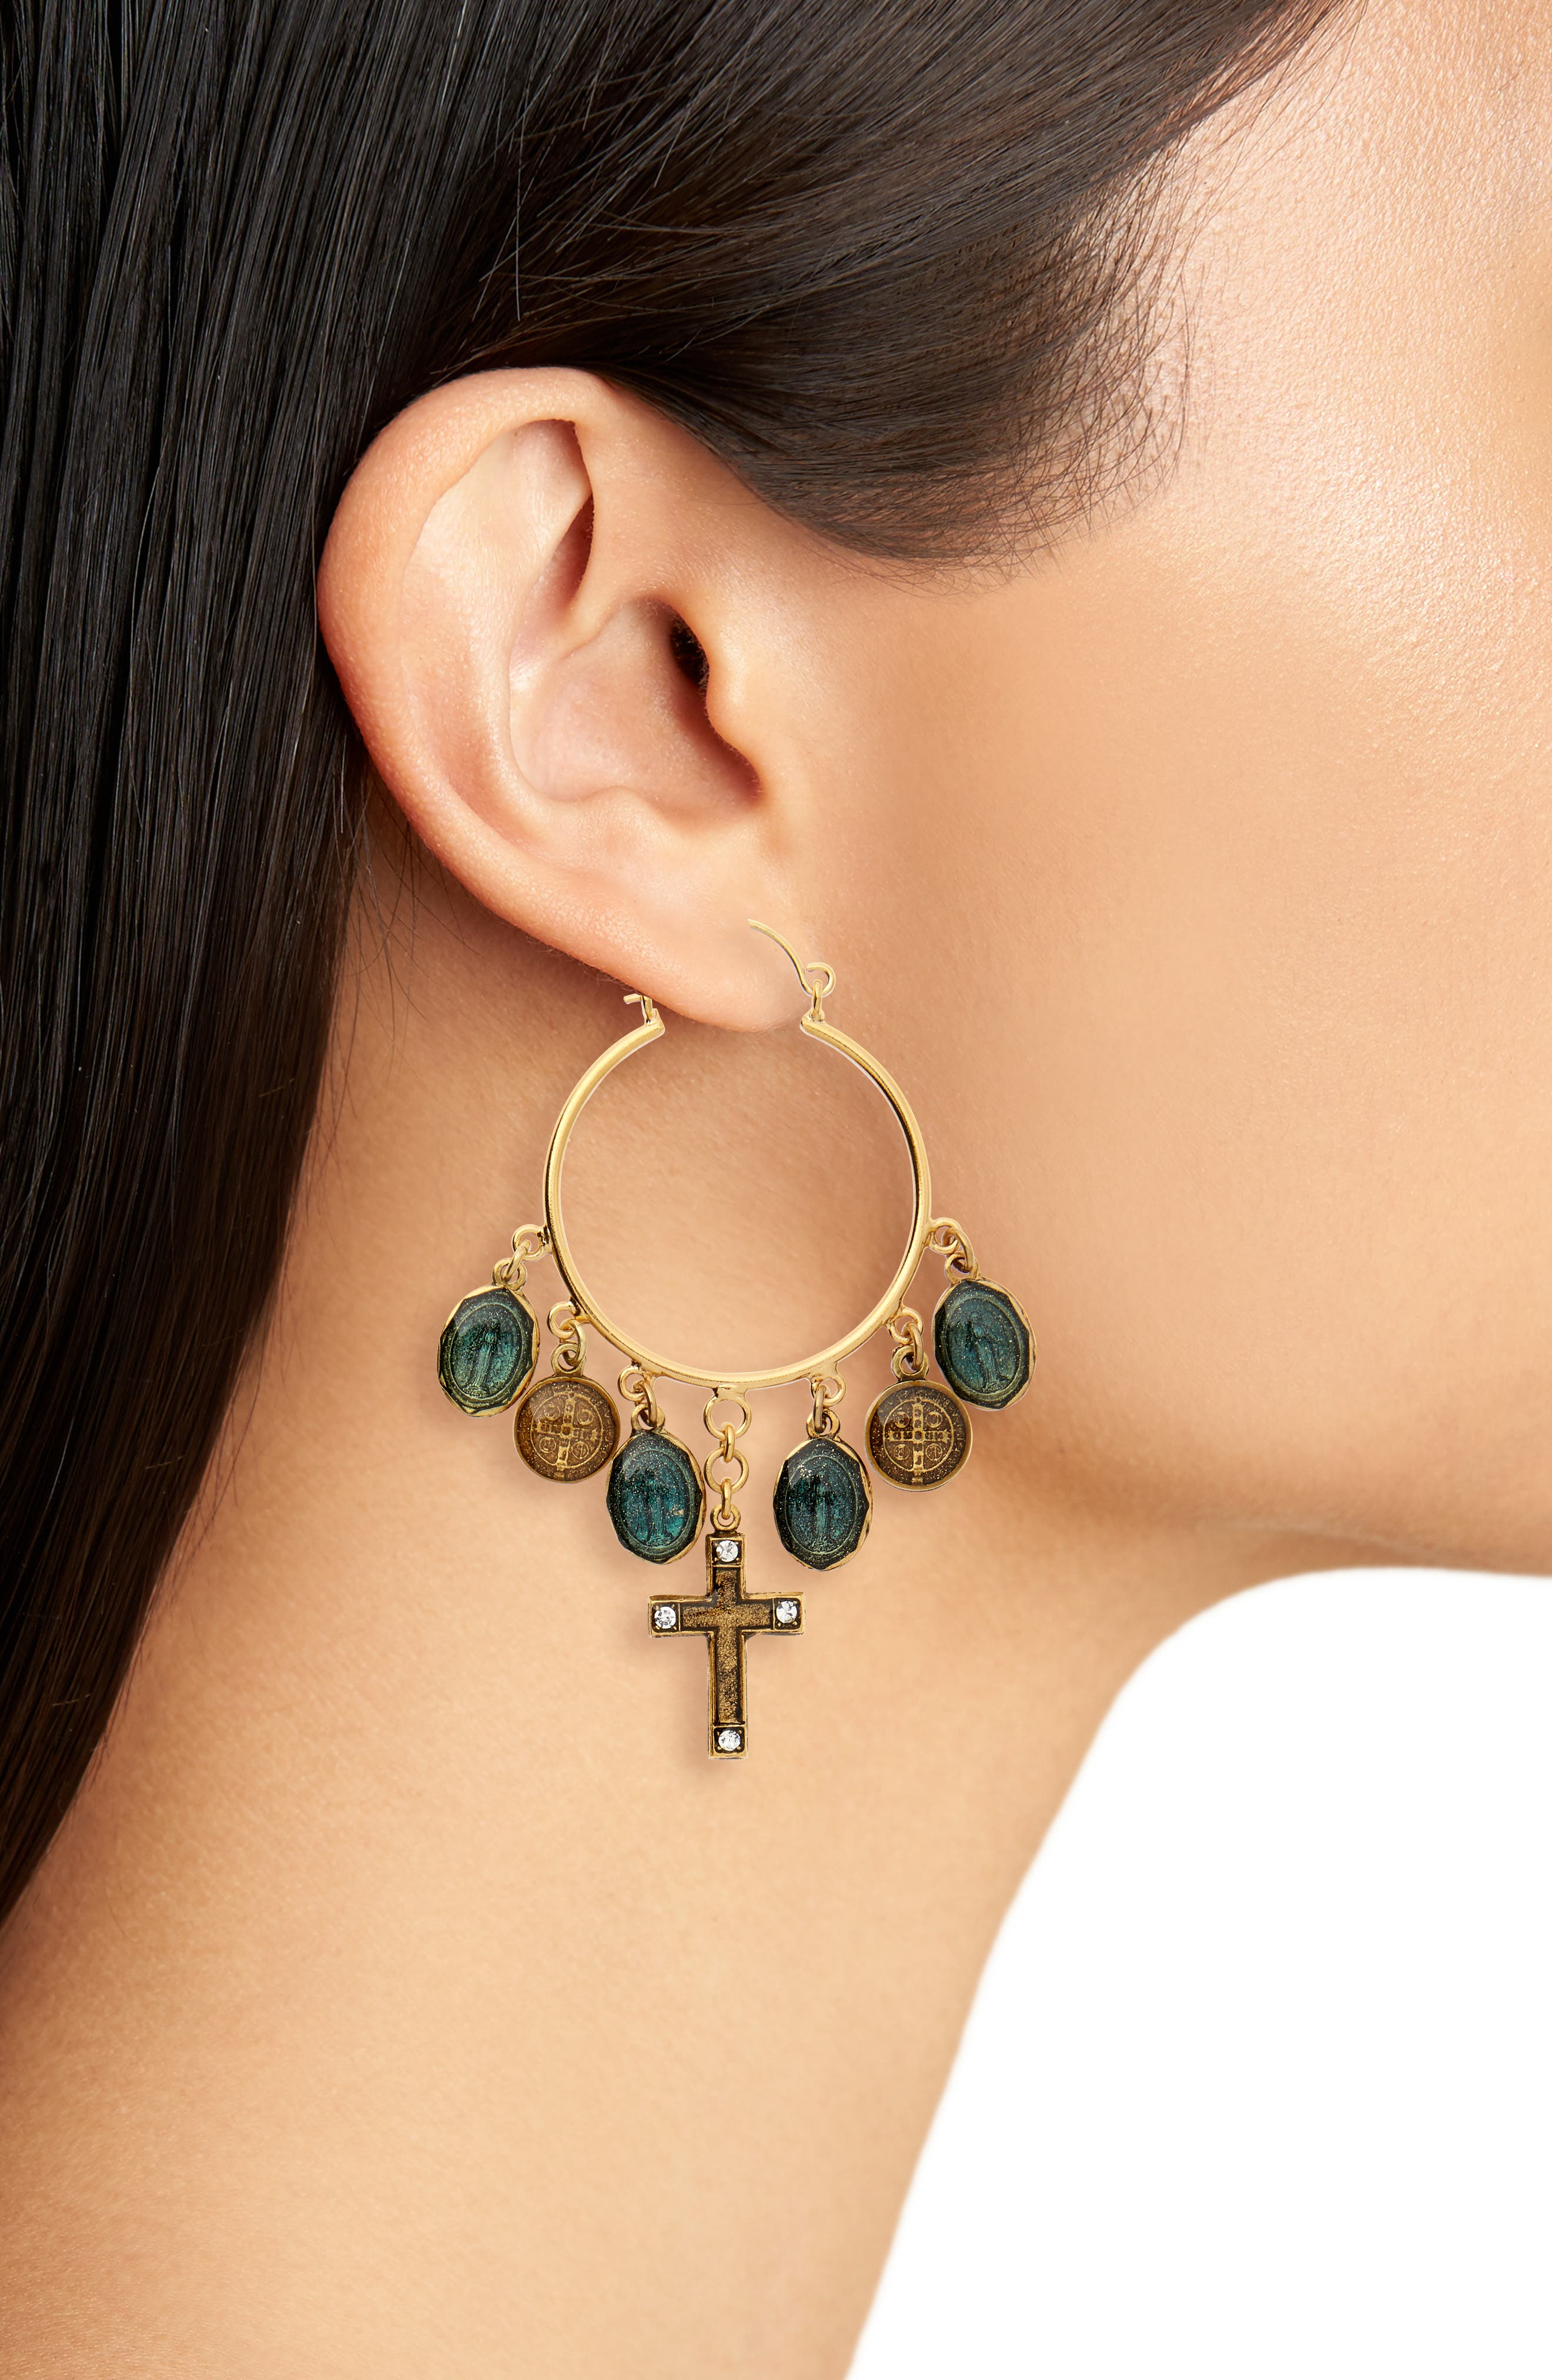 Les Celestes Charm Hoop Earrings,                             Alternate thumbnail 2, color,                             Gold